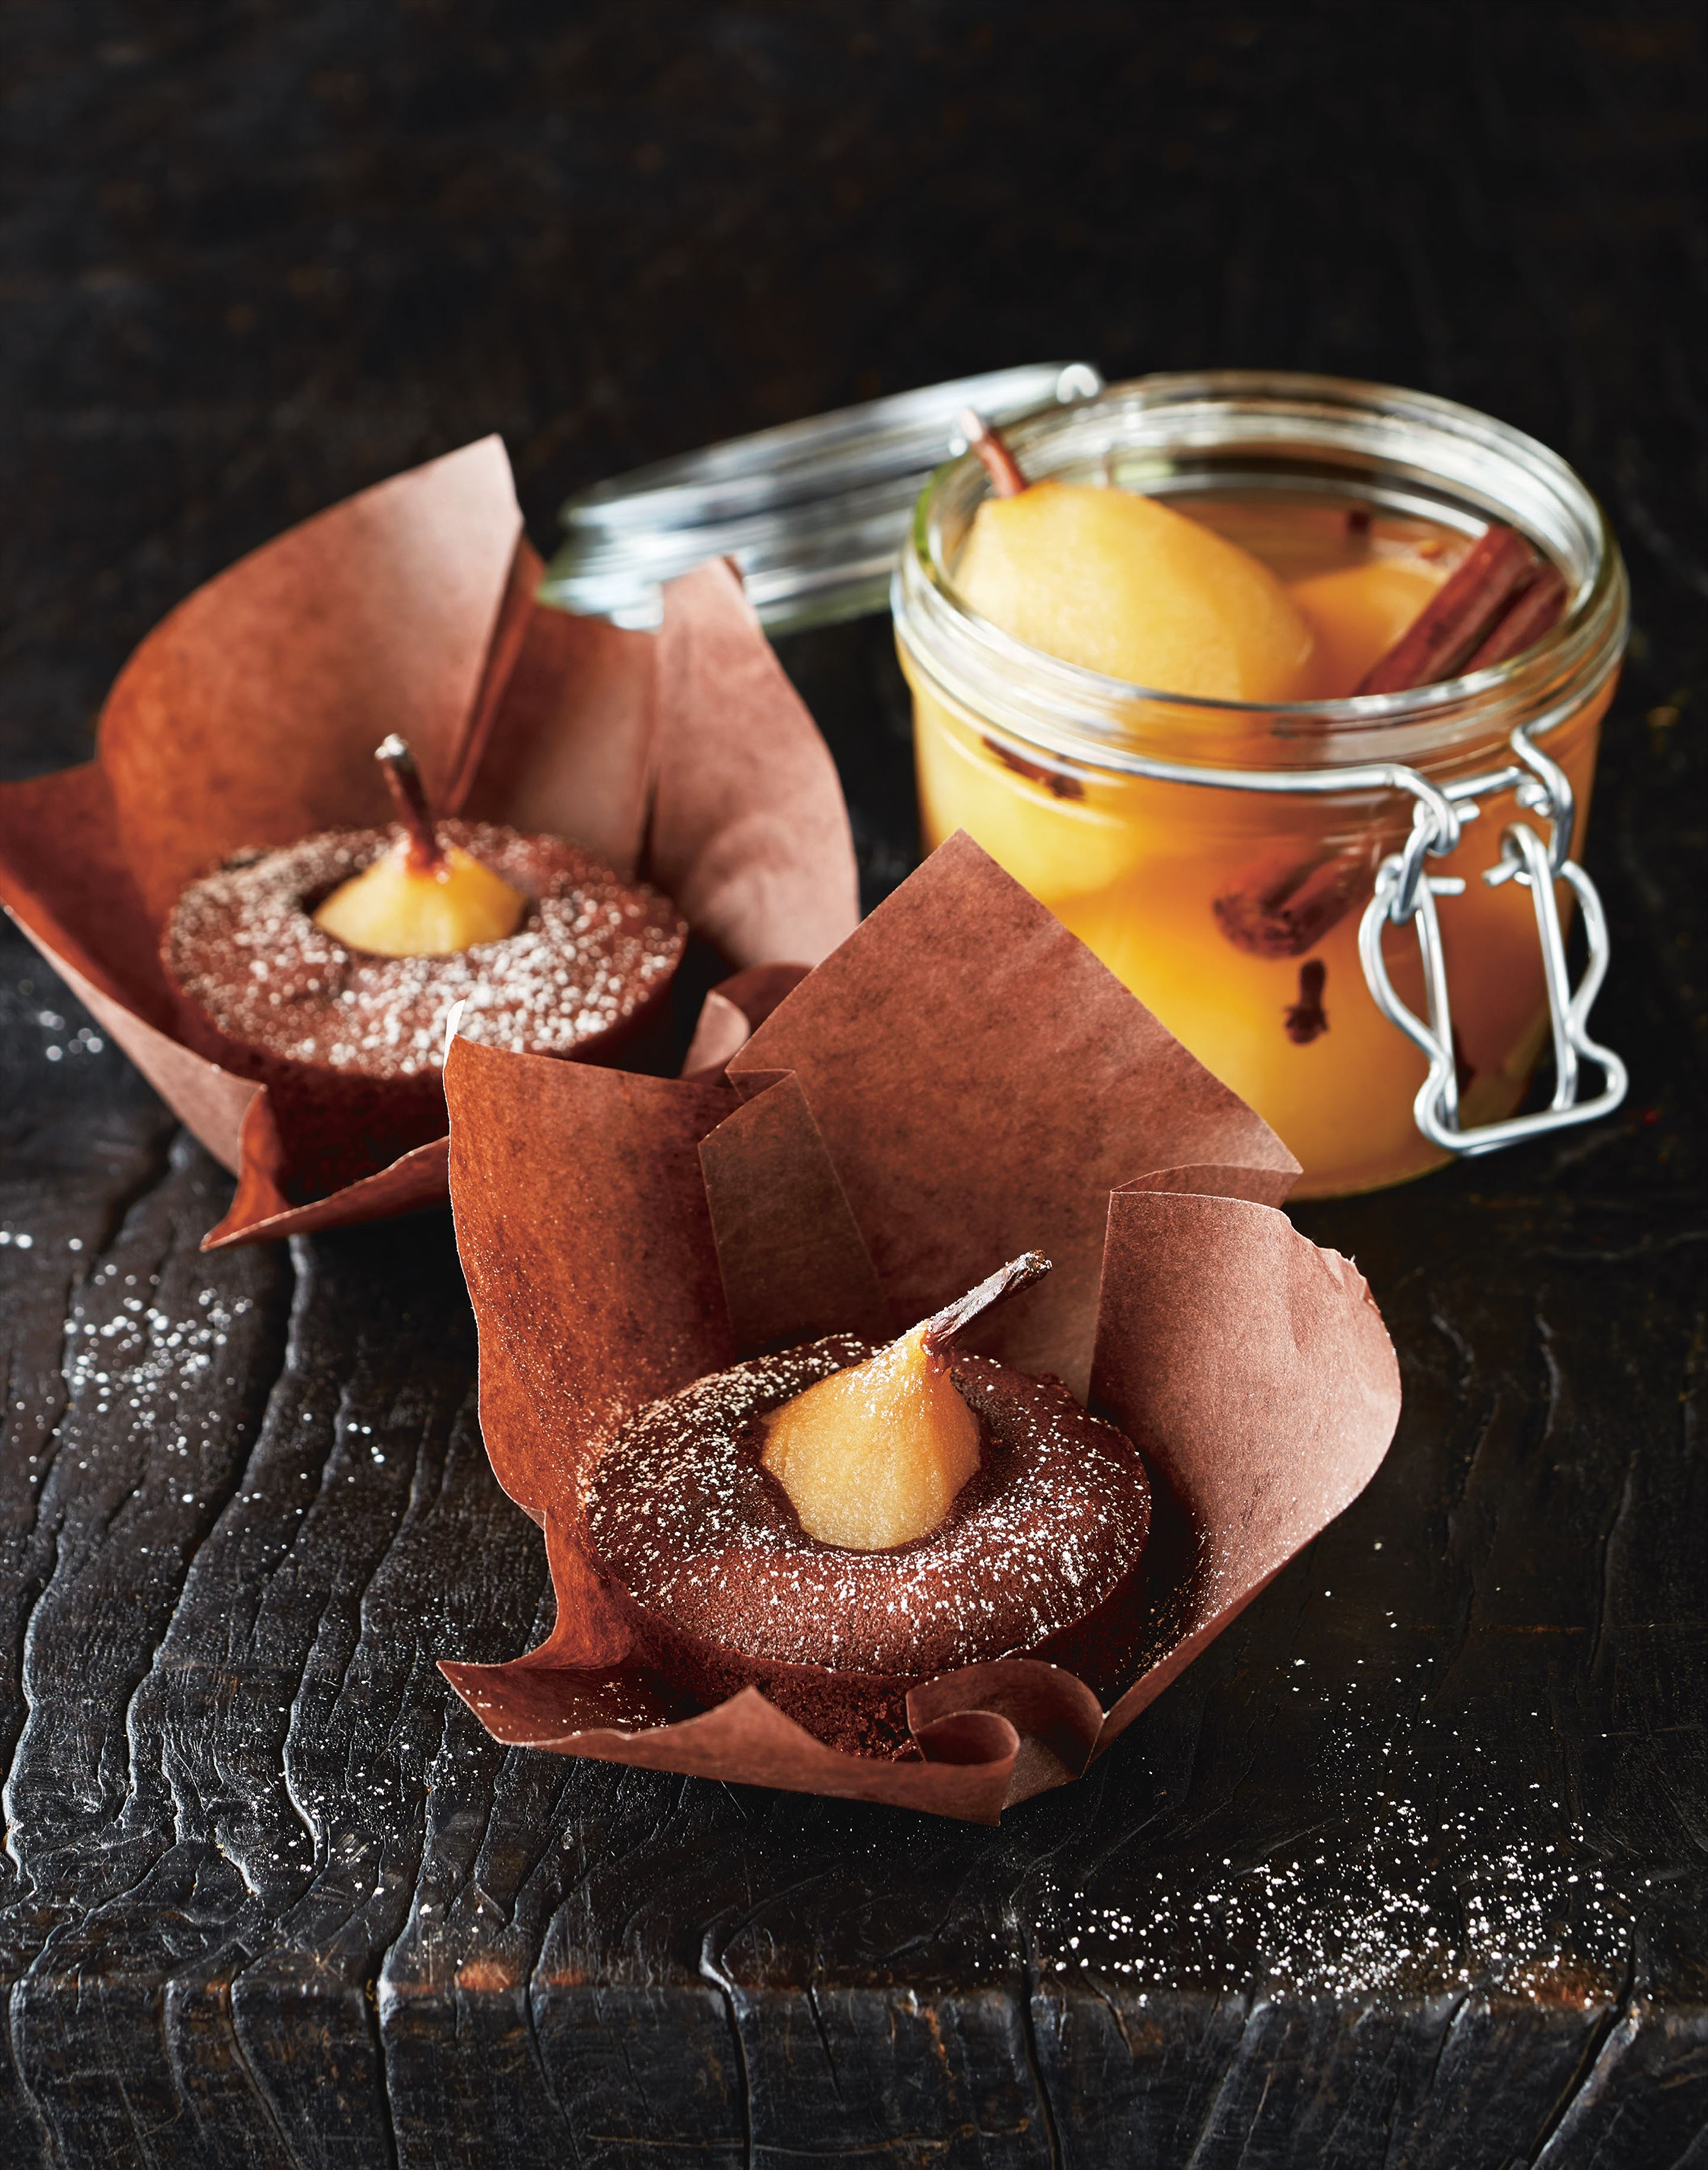 Spiced pear and chocolate cakes